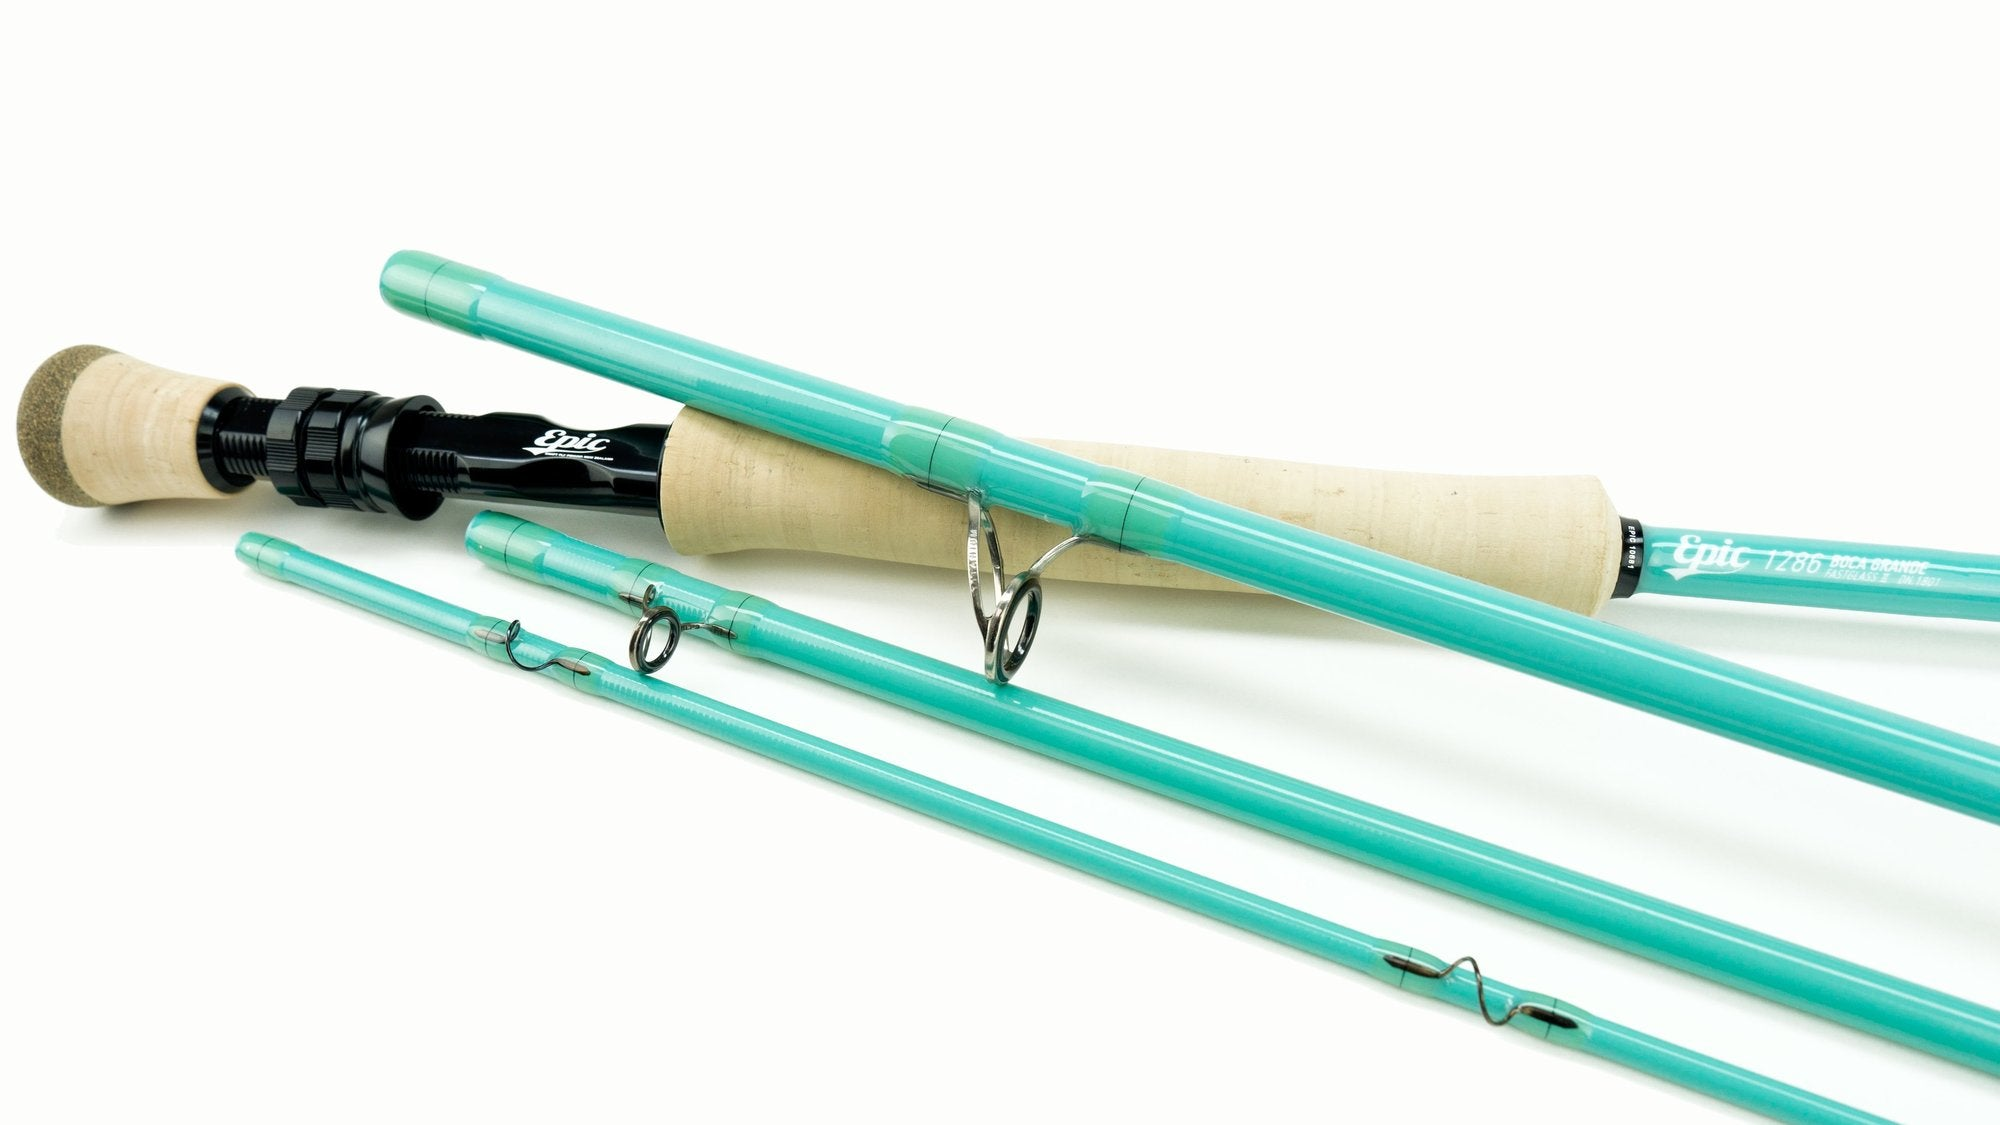 Fly fishing 12wt fiberglass fly rod by Epic